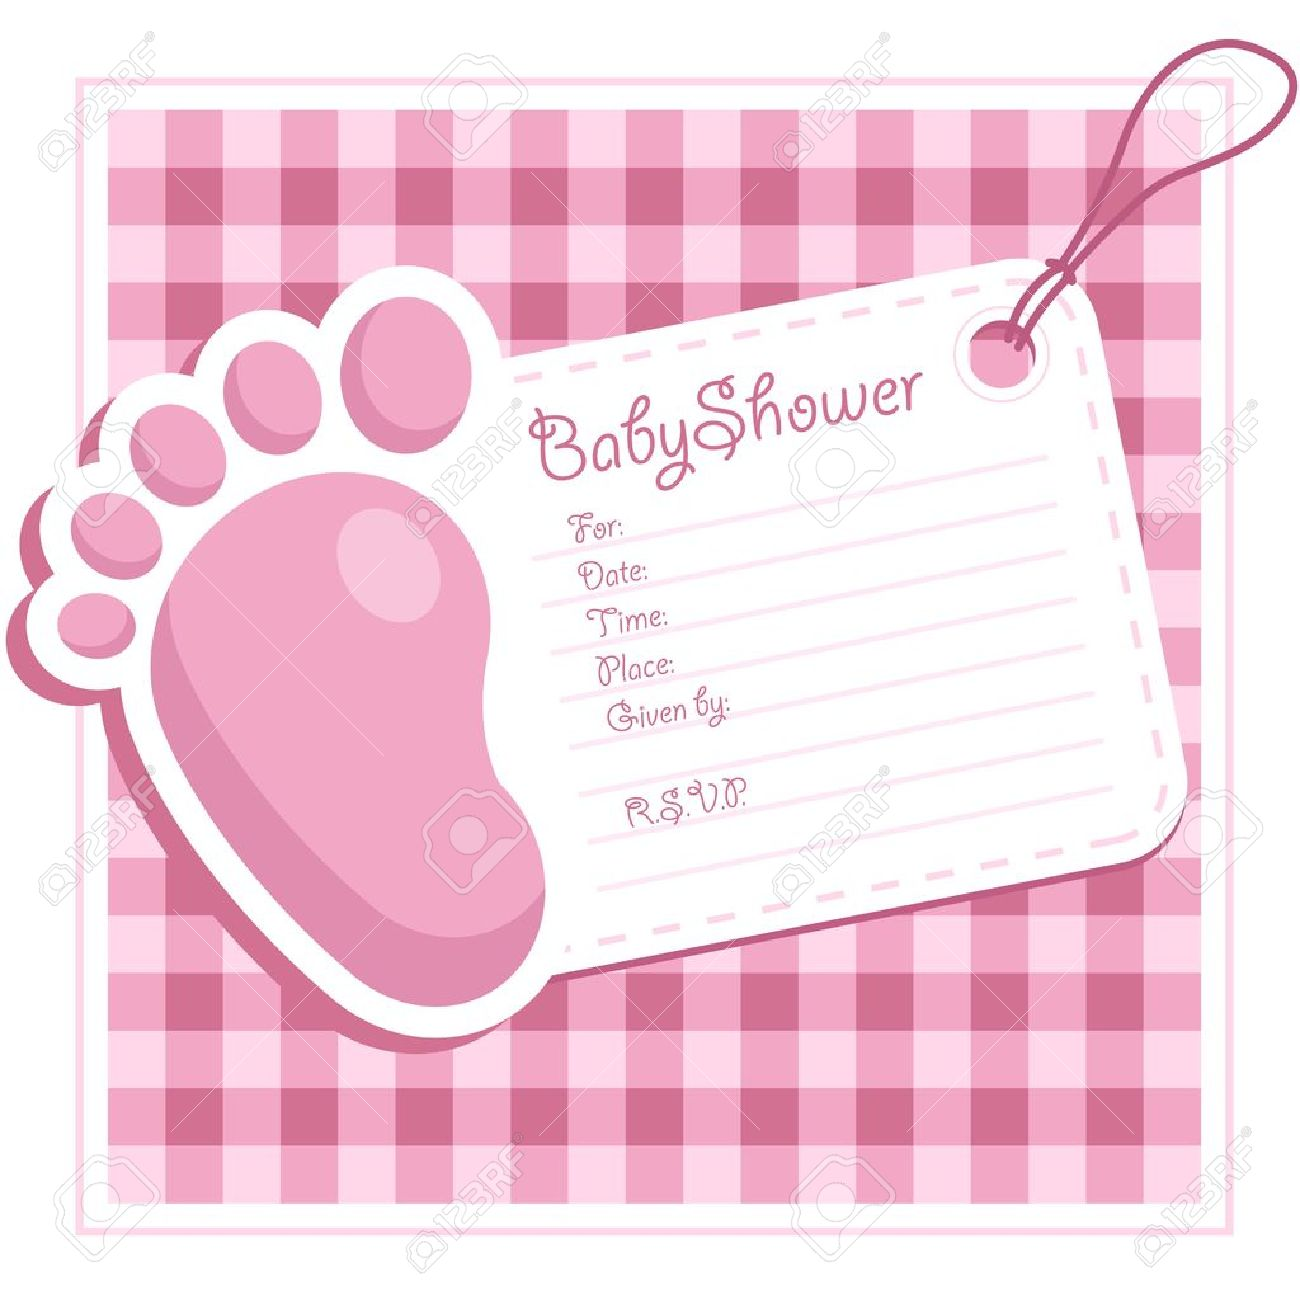 pink baby shower invitation royalty free cliparts, vectors, and, Baby shower invitations